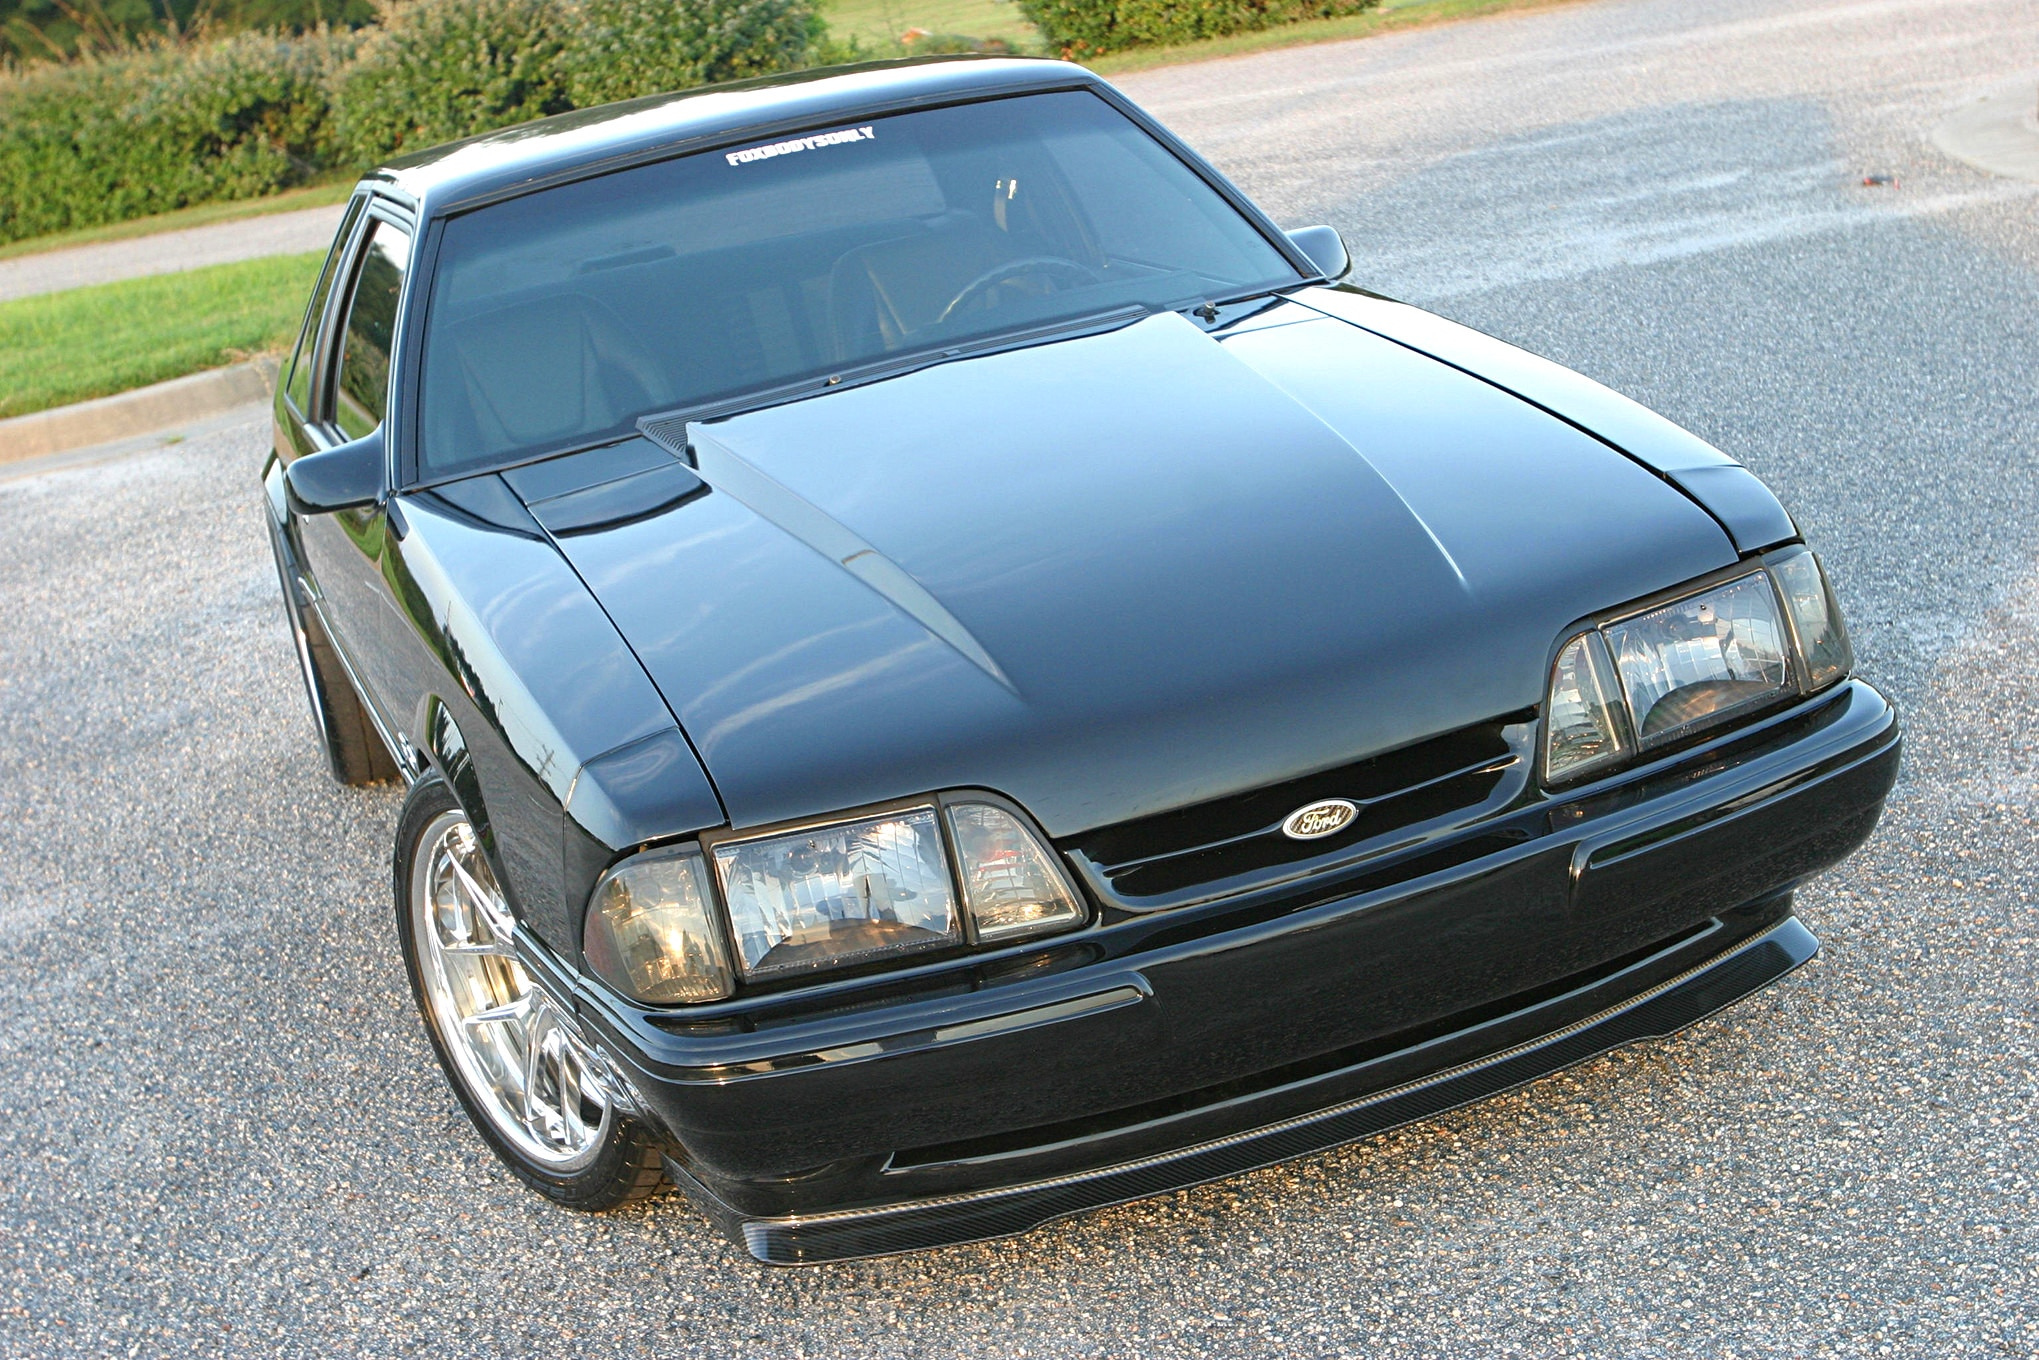 1988 Ford Mustang Lx Coupe Kody Smith Exterior 2